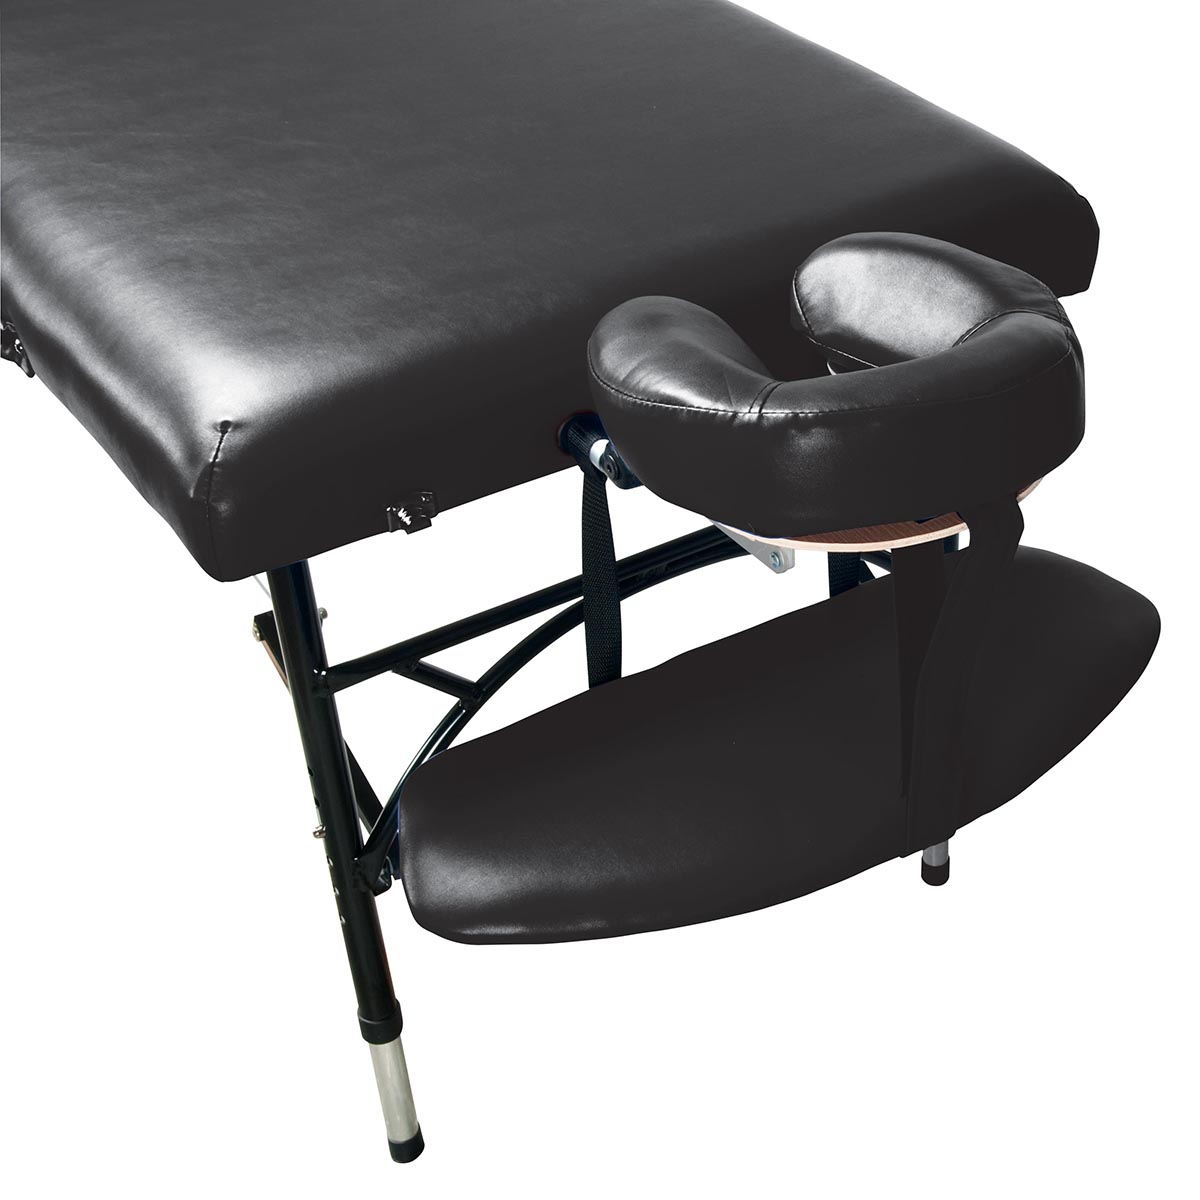 3b aluminum portable massage table black